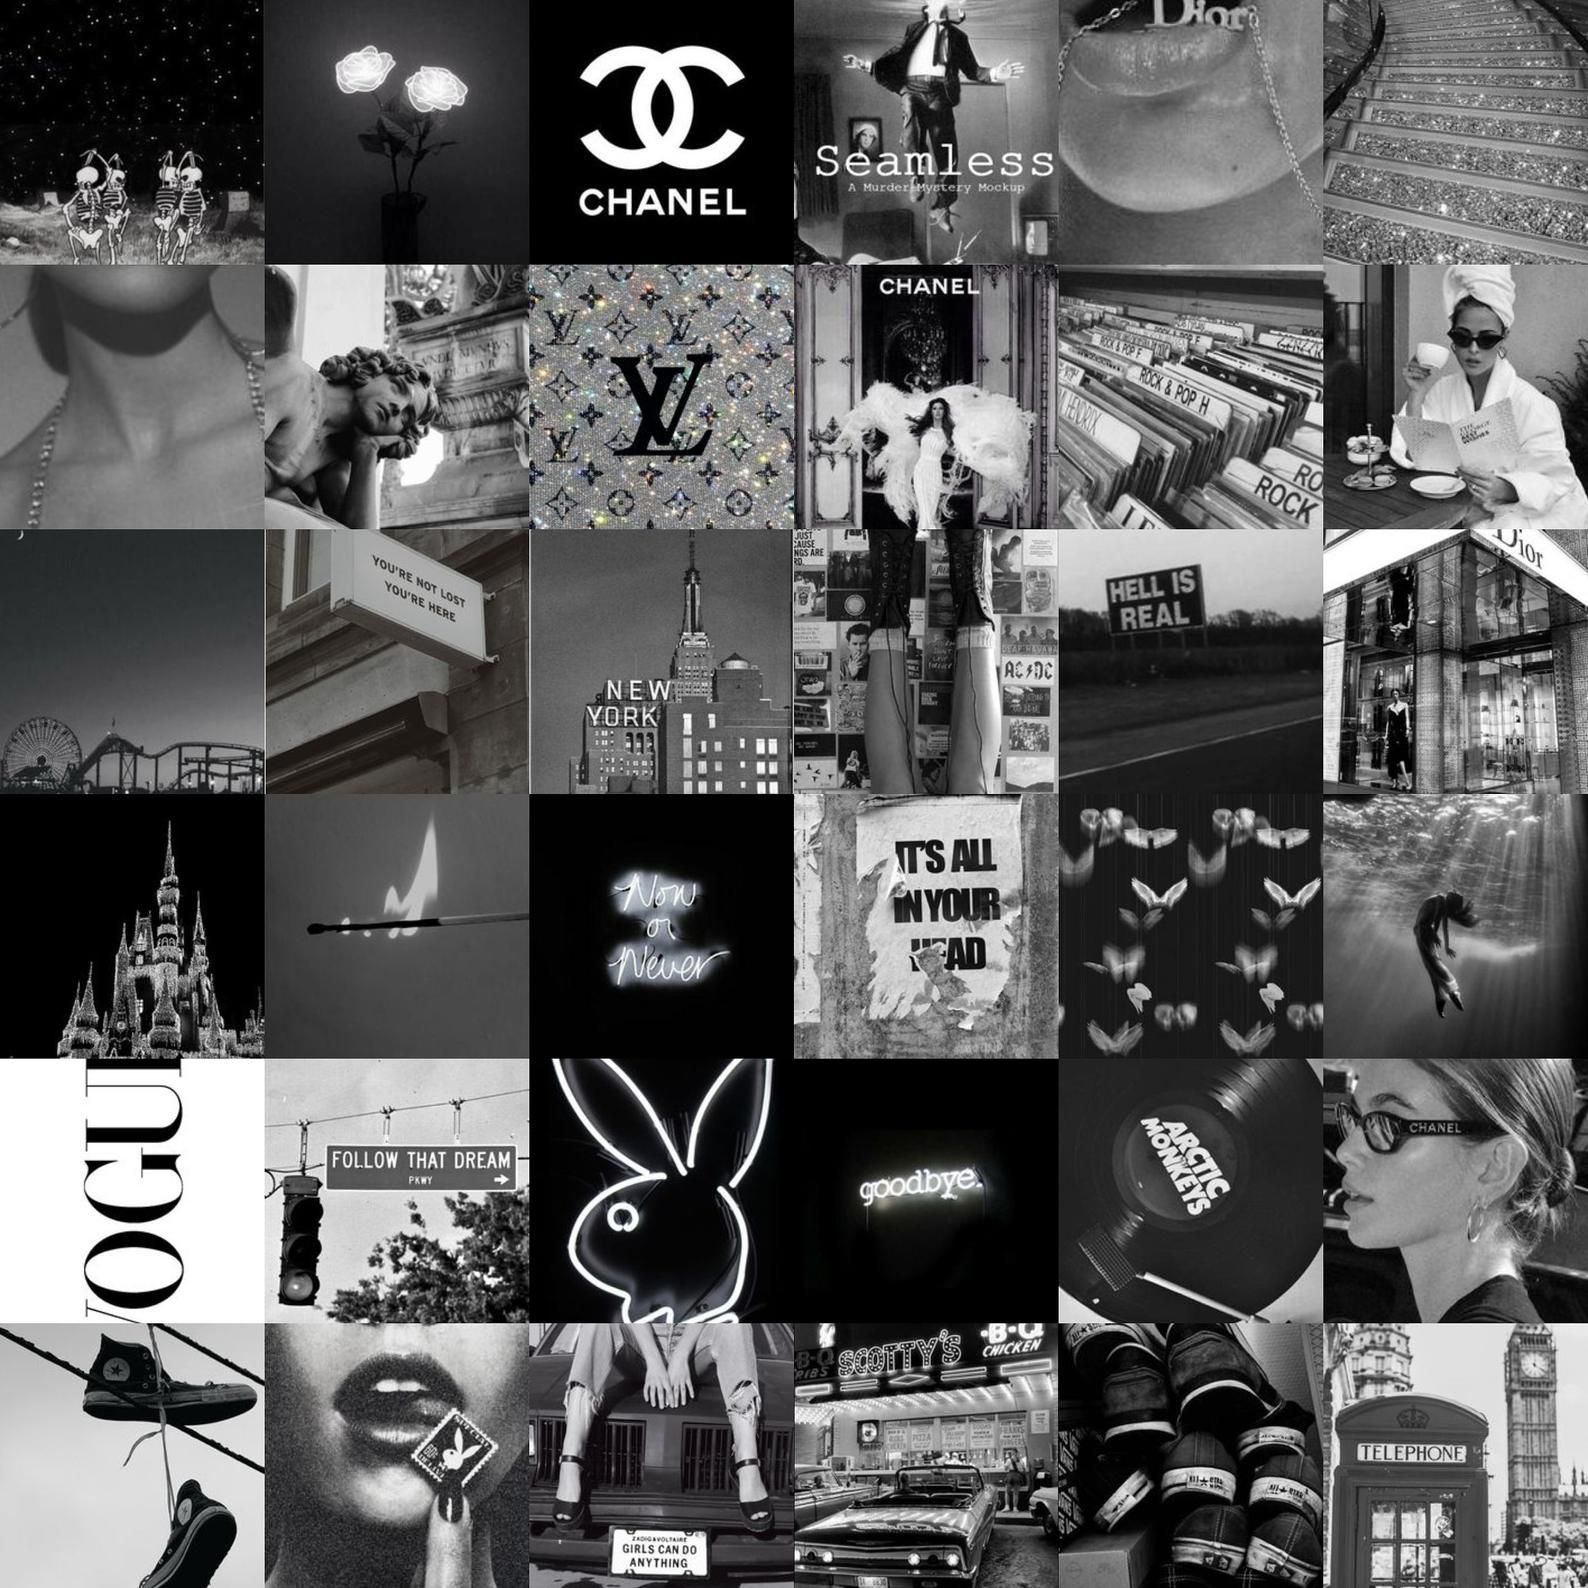 80pc Black And White Aesthetic Wall Collage Kit Etsy In 2021 Black And White Aesthetic Black And White Photo Wall Black And White Picture Wall Cute black and white wallpaper